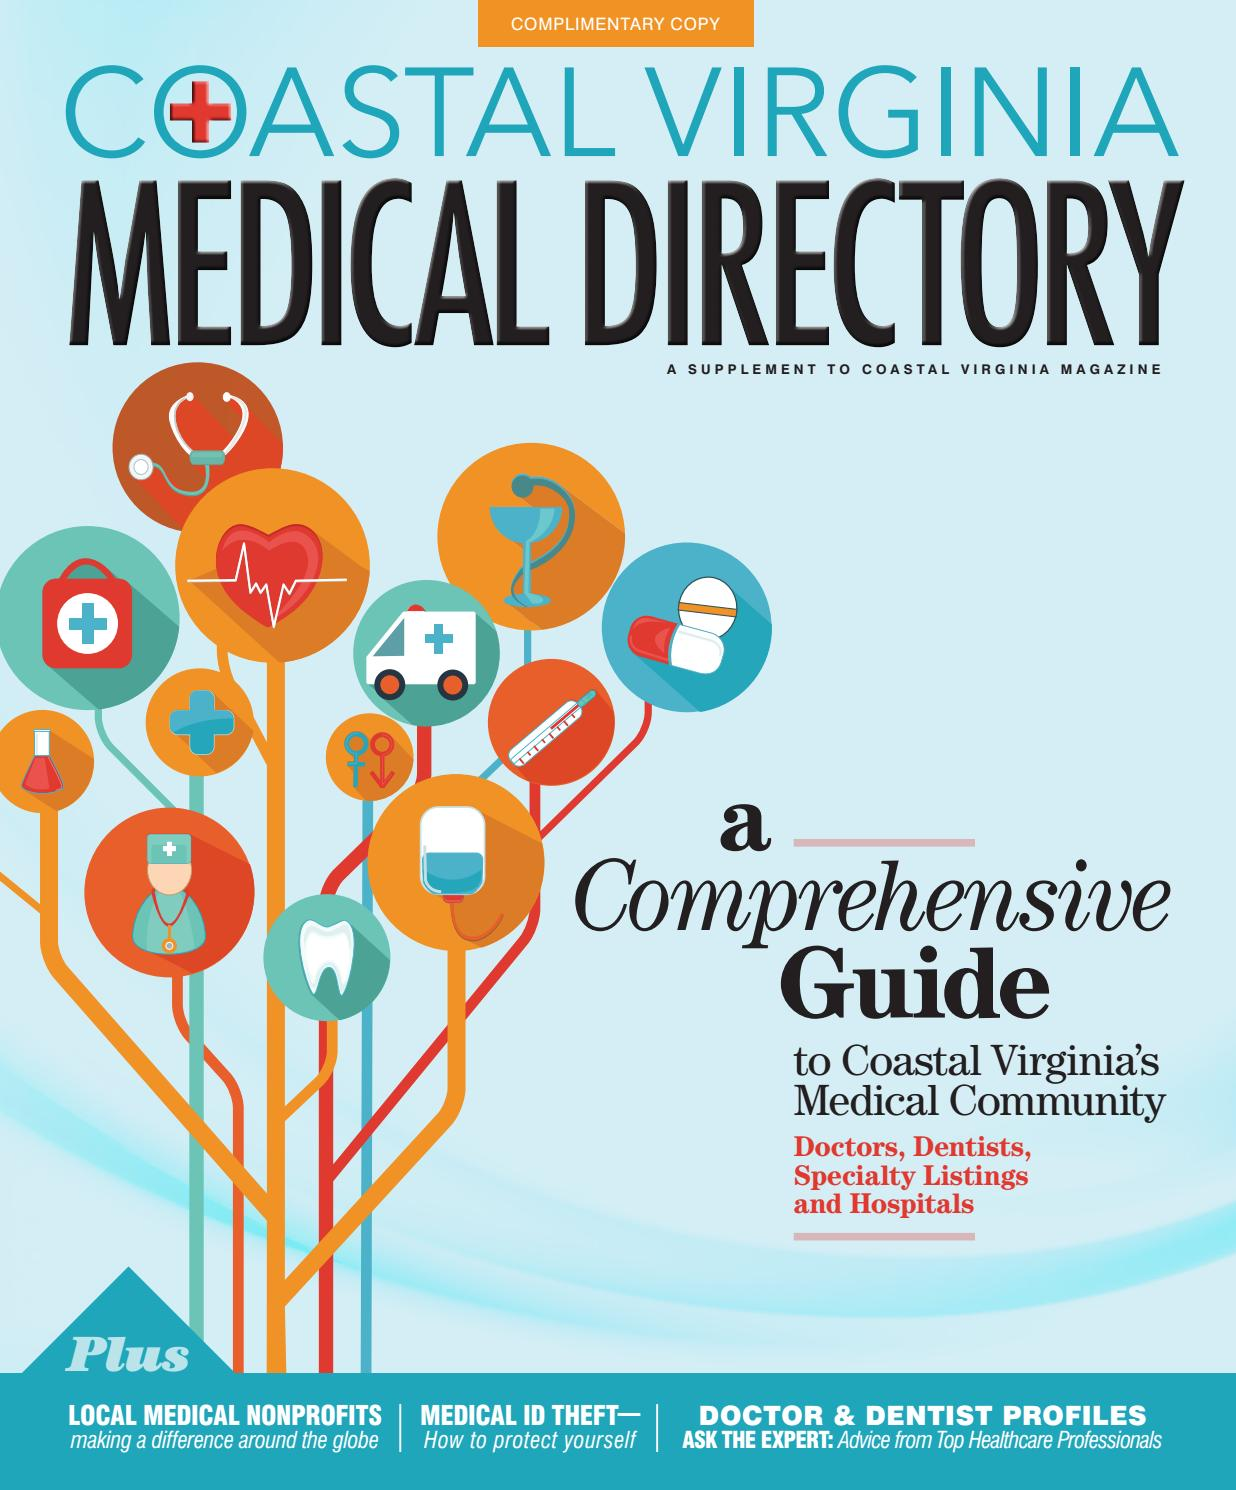 Coastal Virginia Medical Directory 2017 by VistaGraphics - issuu